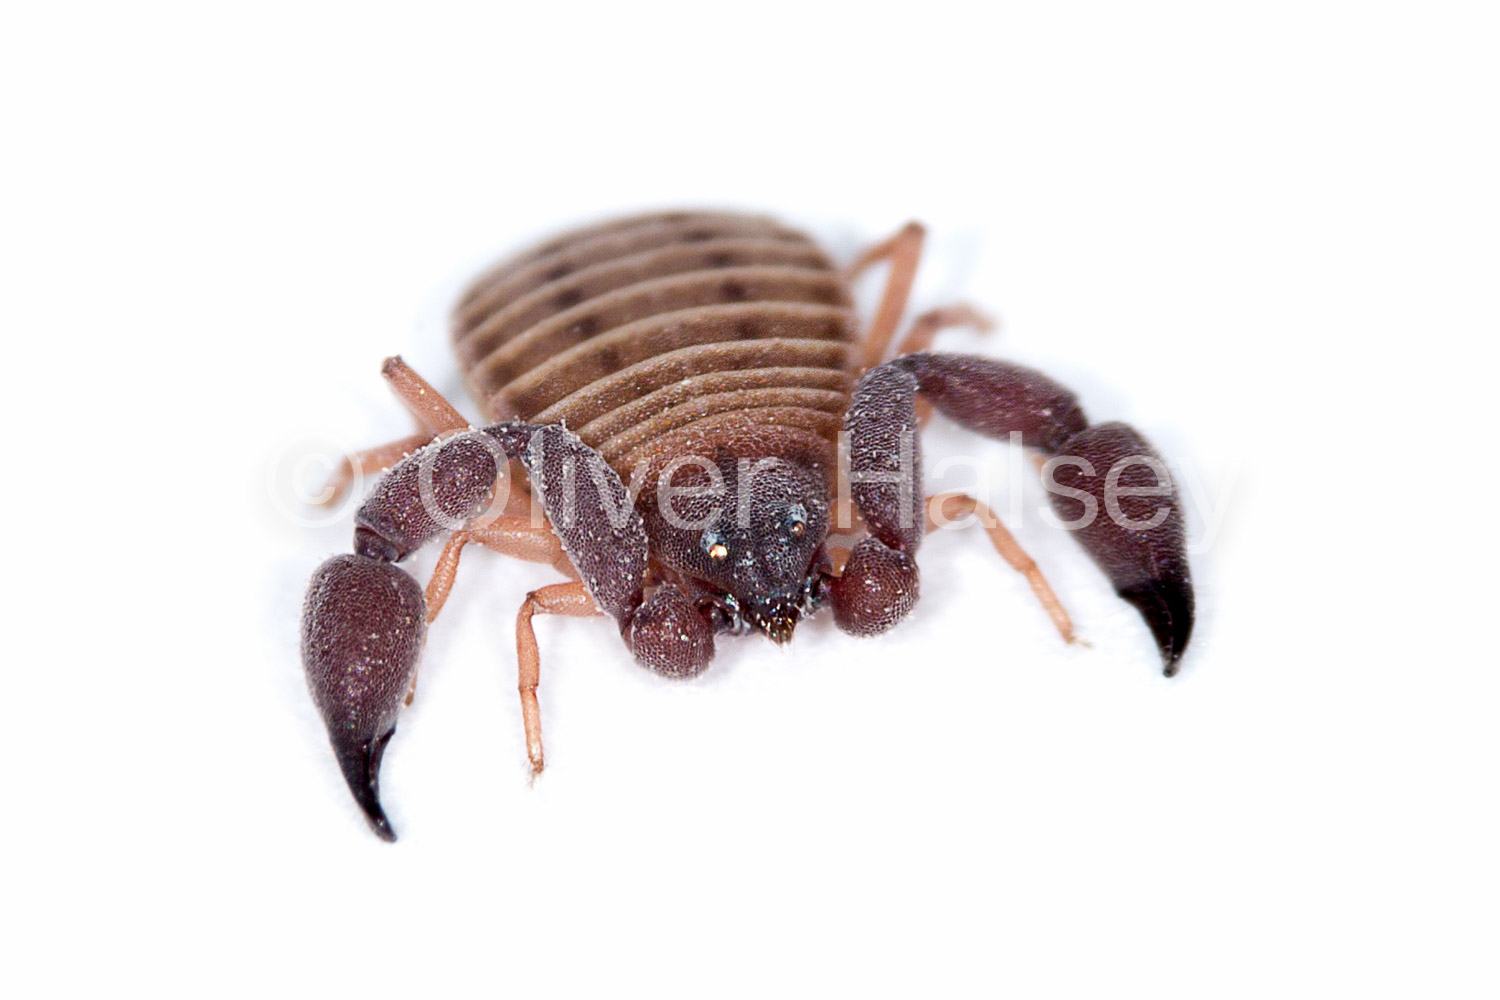 M12.  Pseudoscorpion, unknown species. Found under a rock on an interdune of the Namib Sand Sea